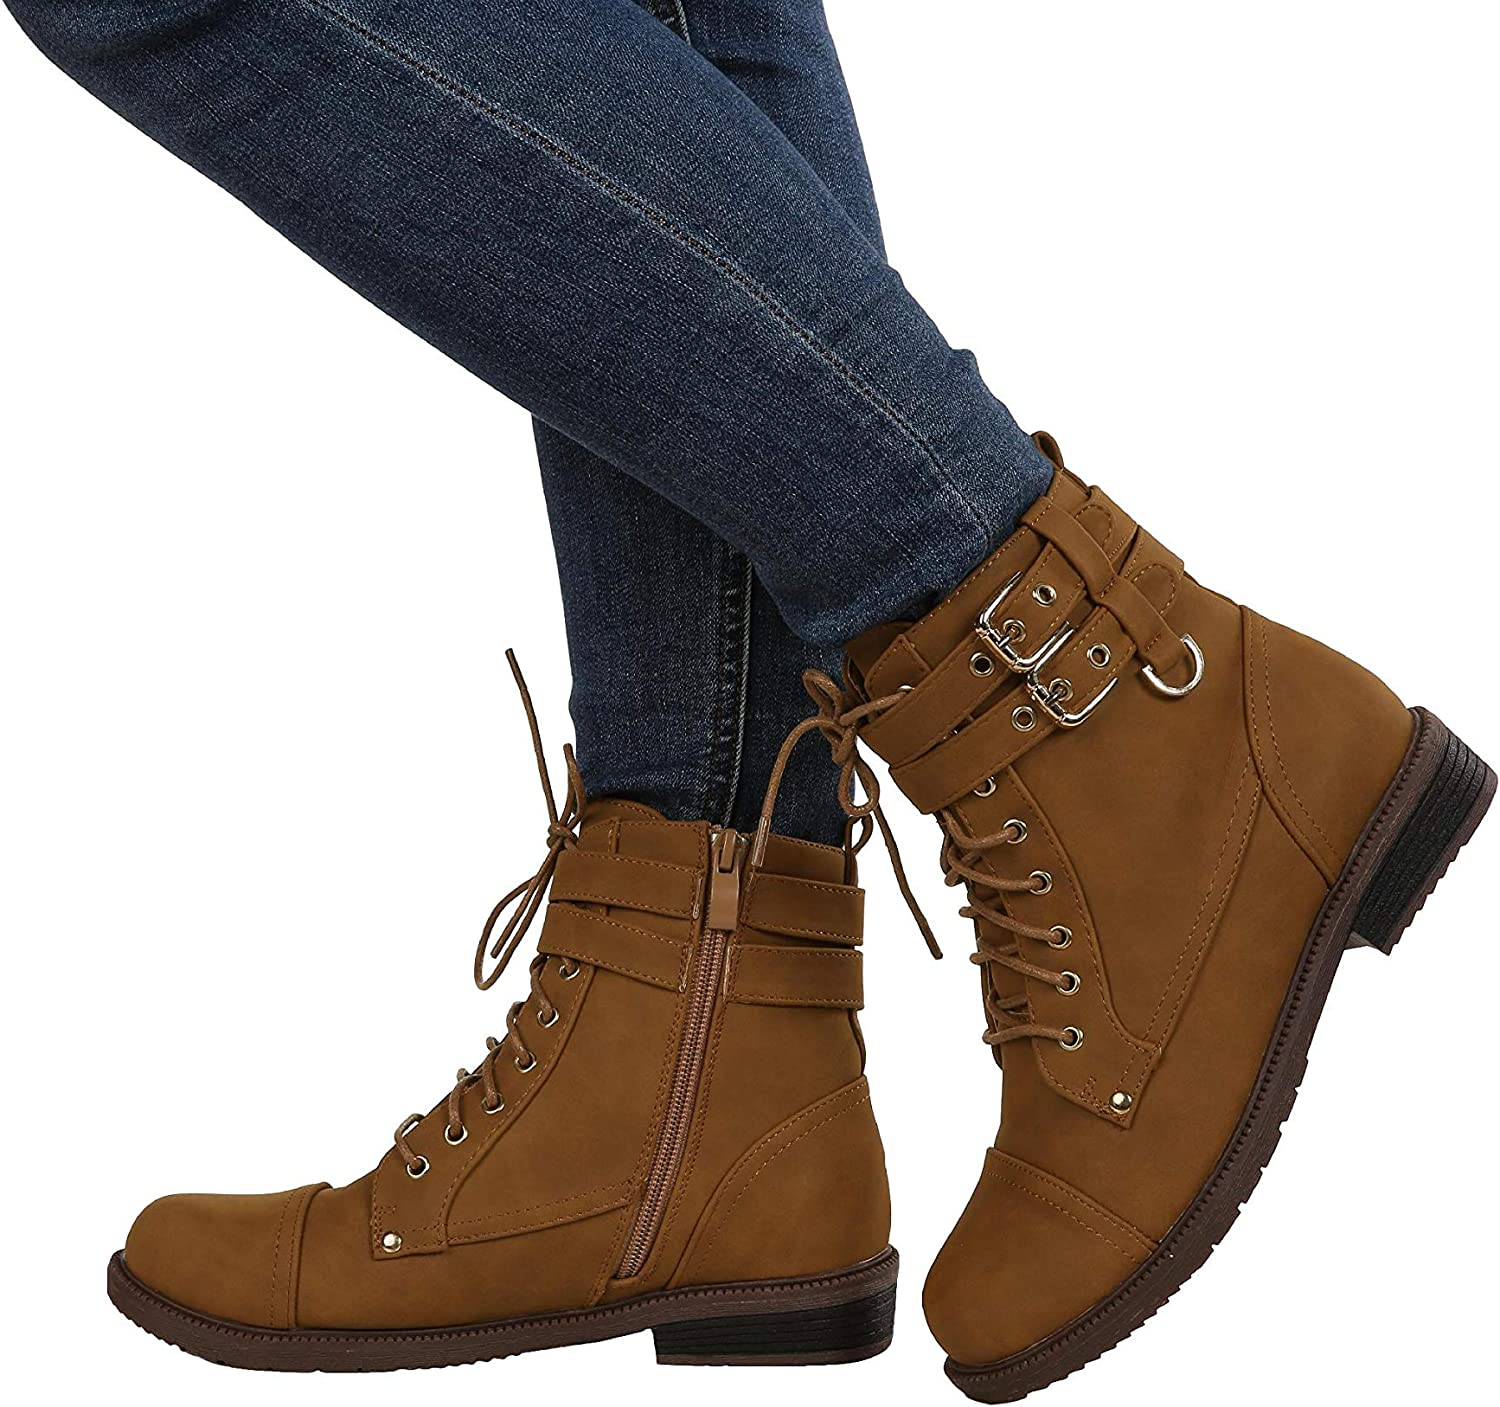 Gemijack Womens Combat Military Boots Buckle Lace Up Faux Leather Low Heel Booties